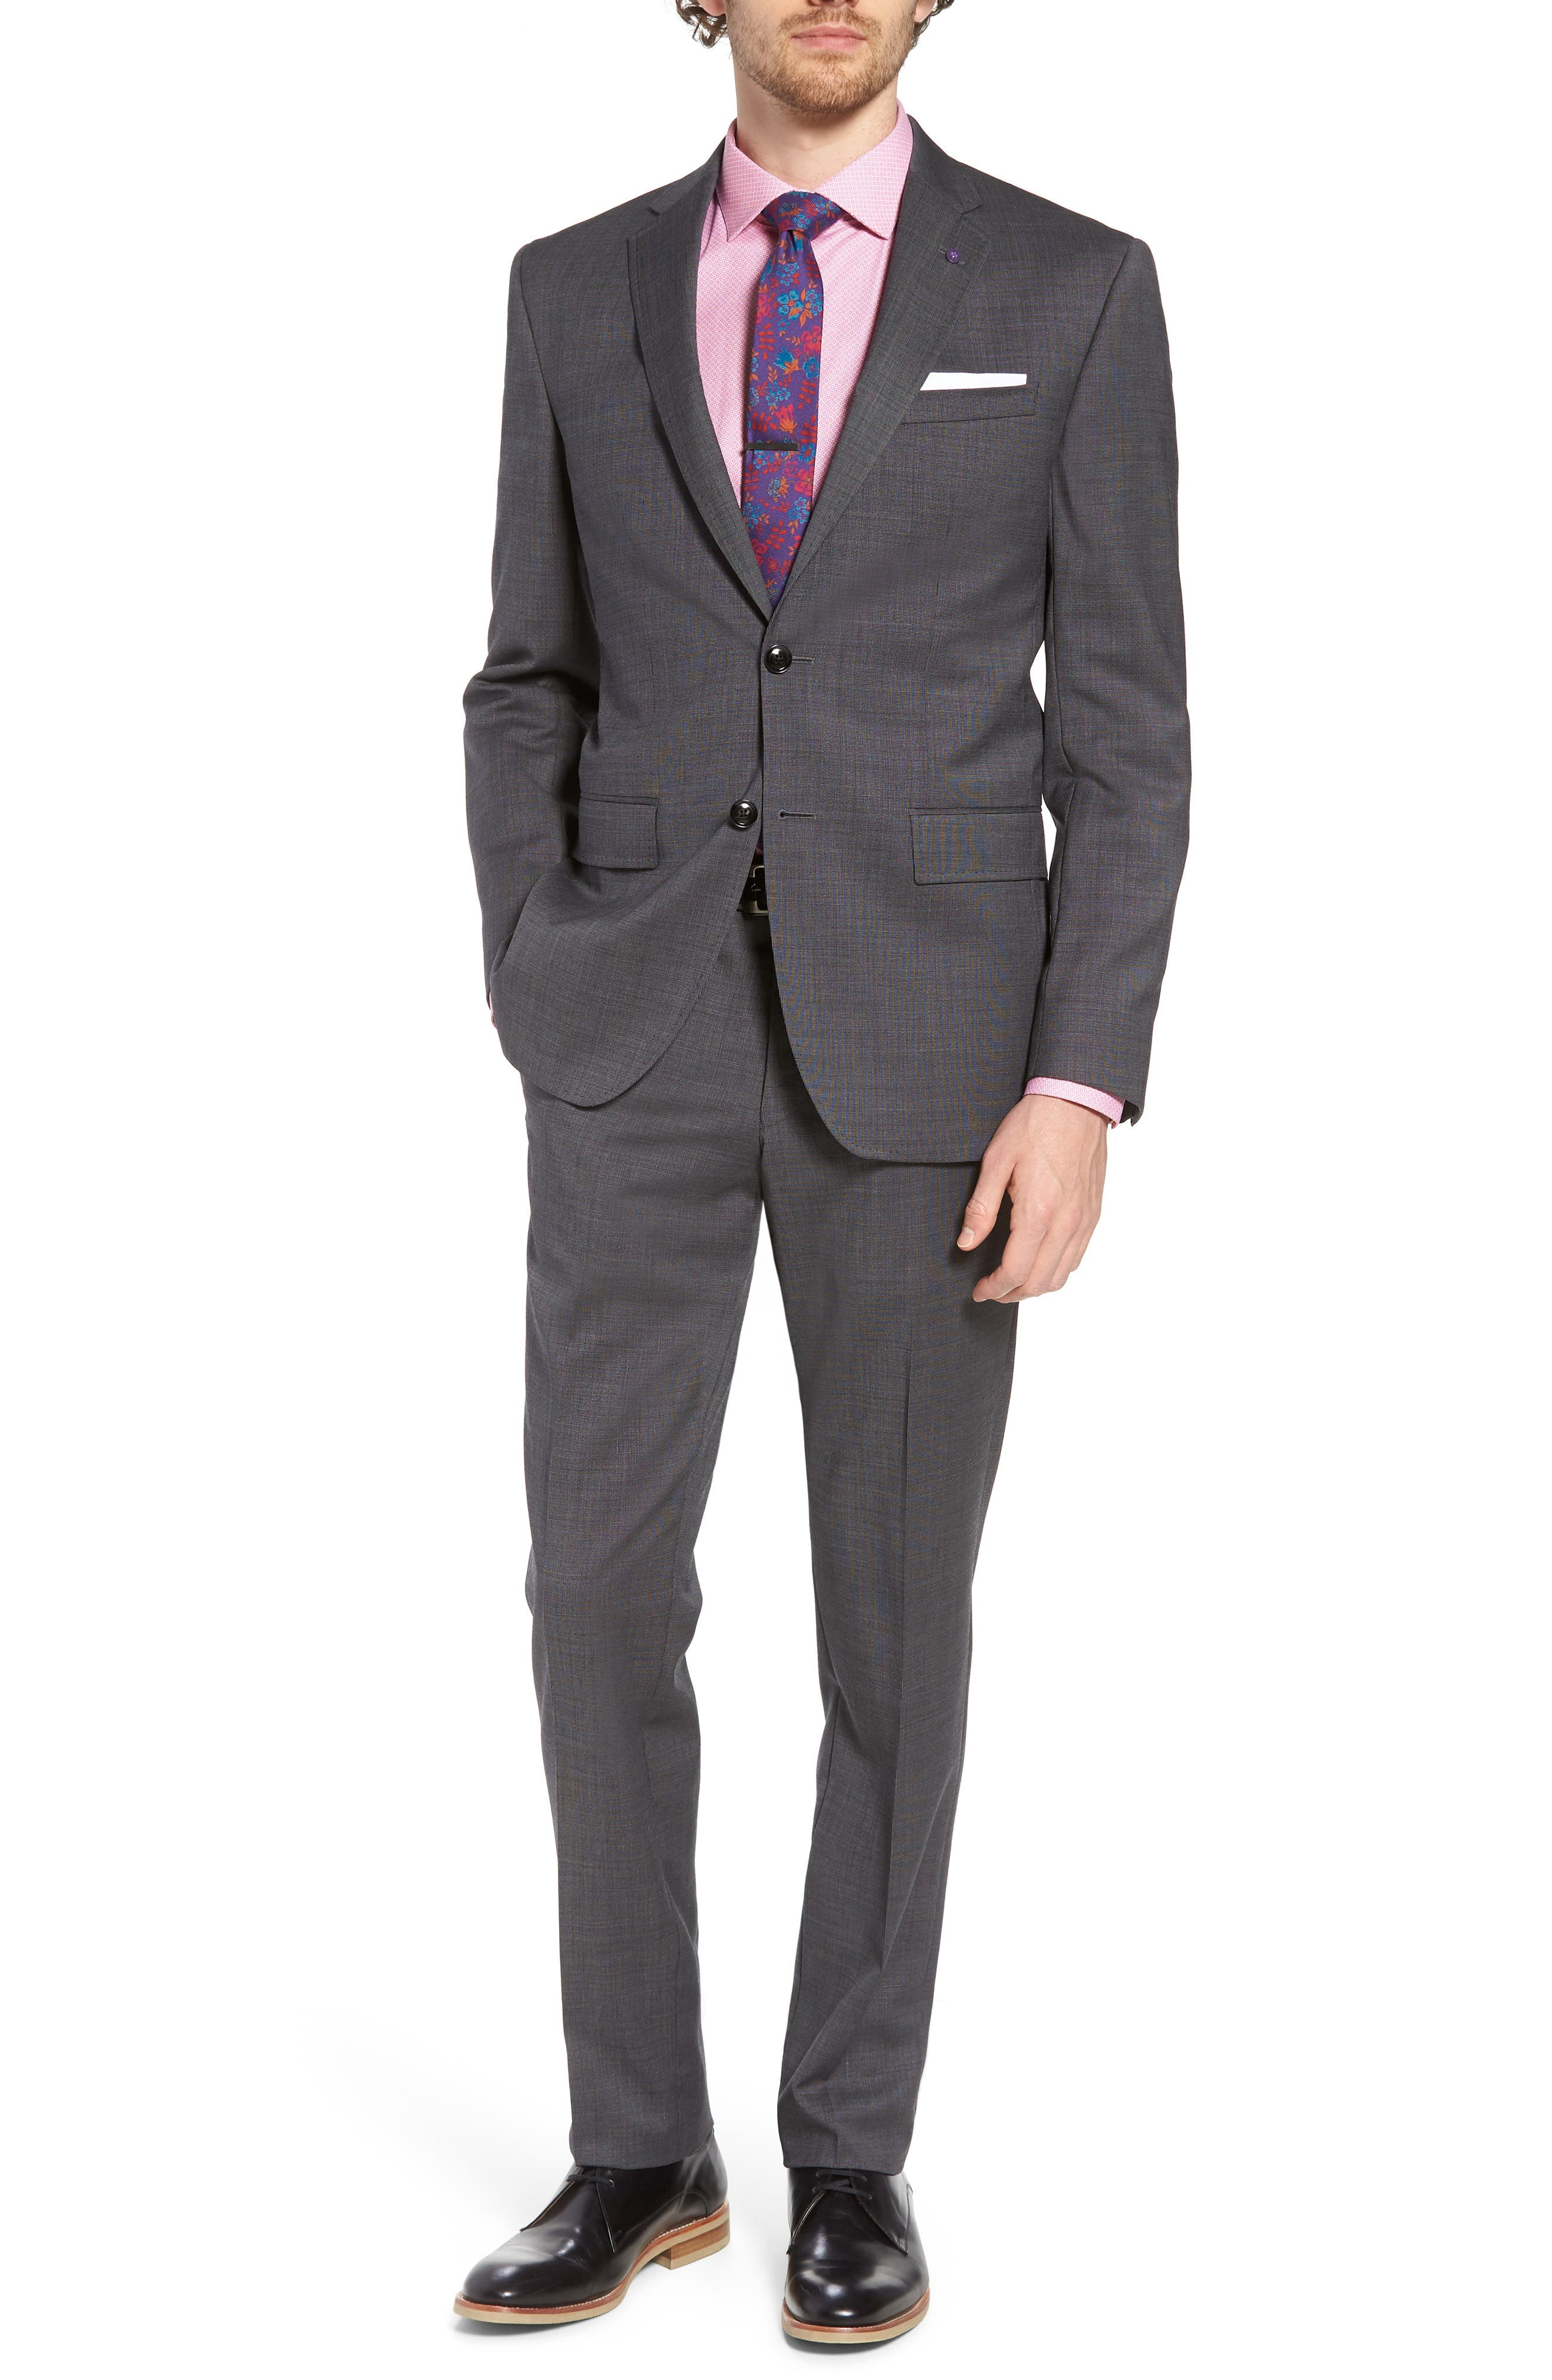 Jay Trim Fit Solid Wool Suit,                             Main thumbnail 1, color,                             Grey